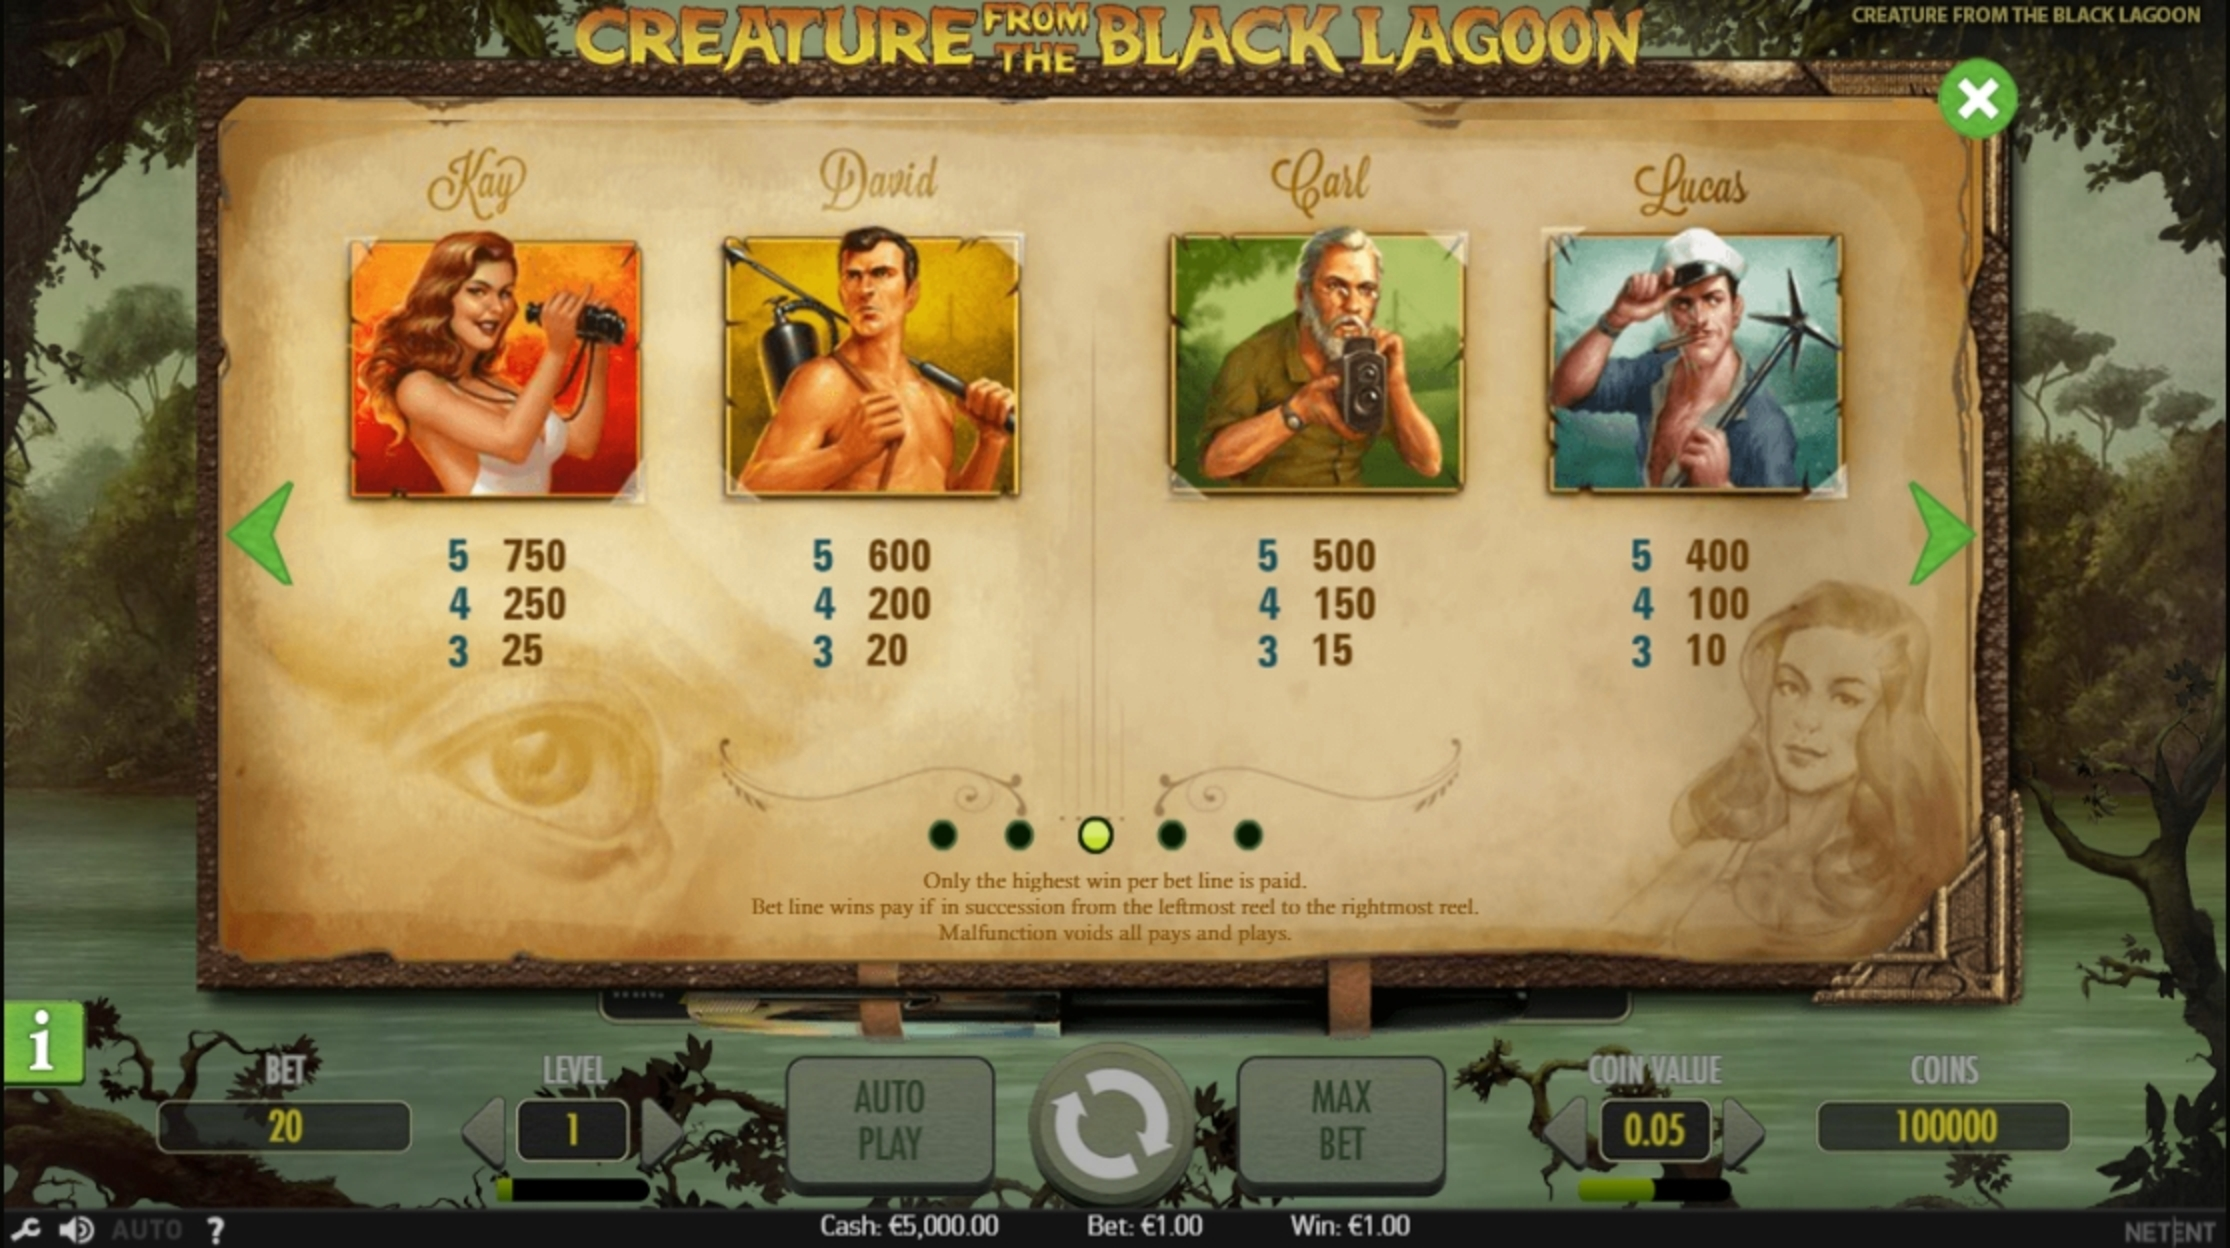 Info of Creature from the Black Lagoon Slot Game by NetEnt